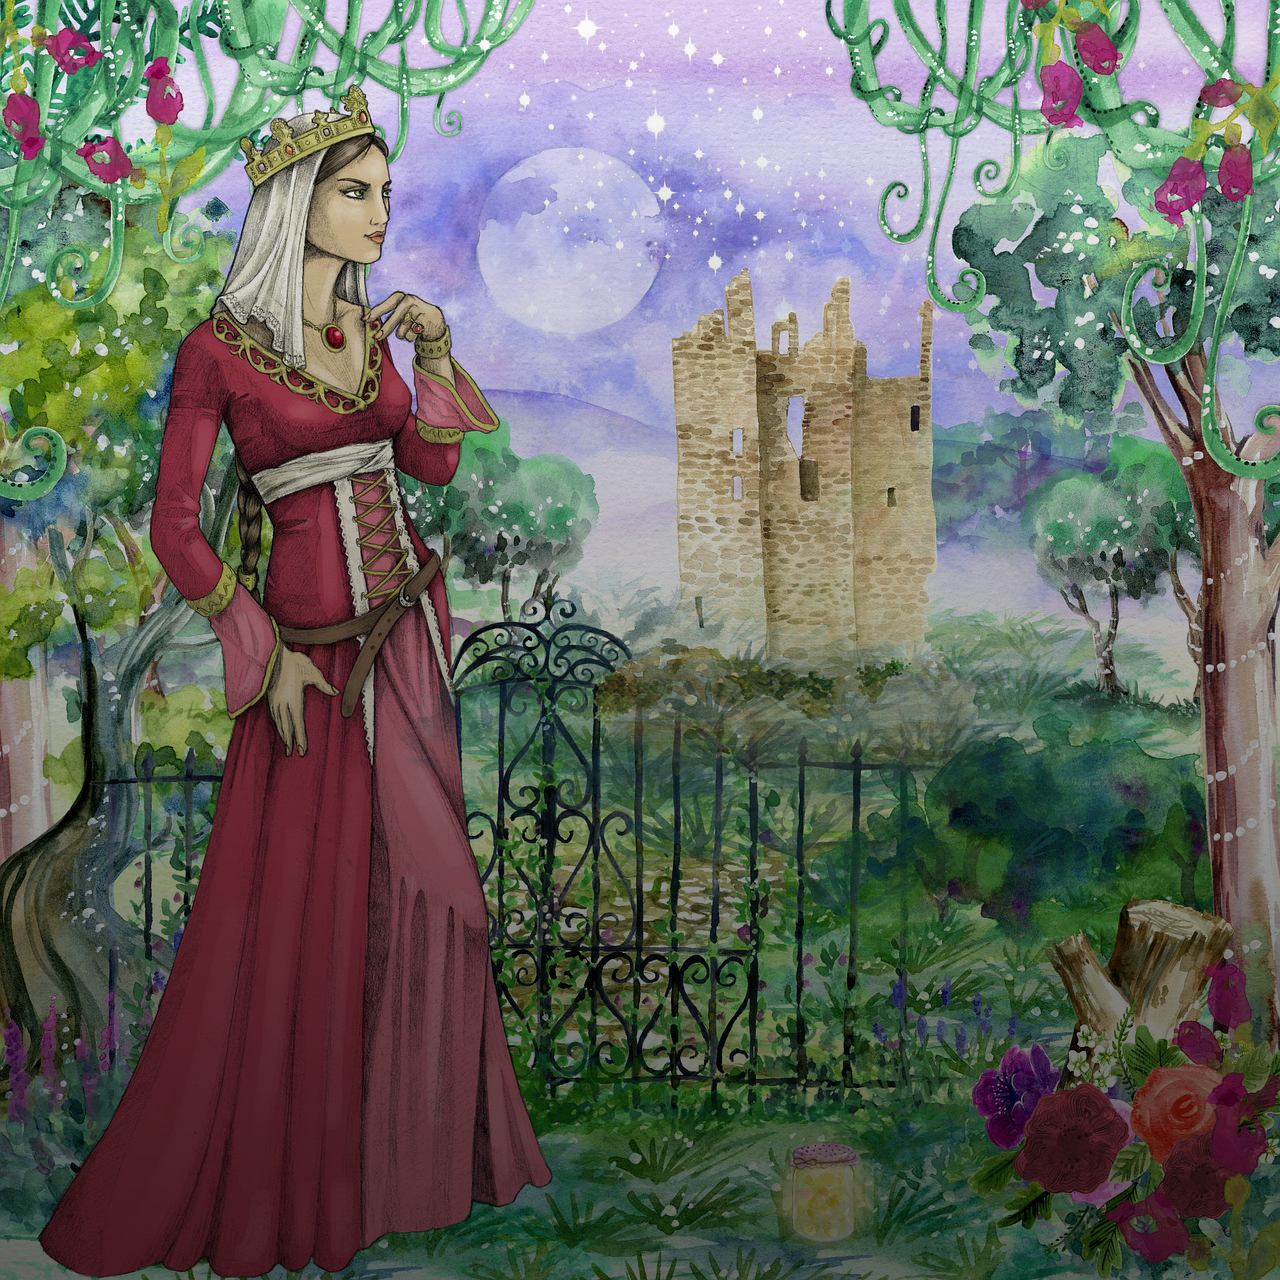 Princess by ArtsyBee https://pixabay.com/illustrations/princess-castle-fairy-tale-2789795/